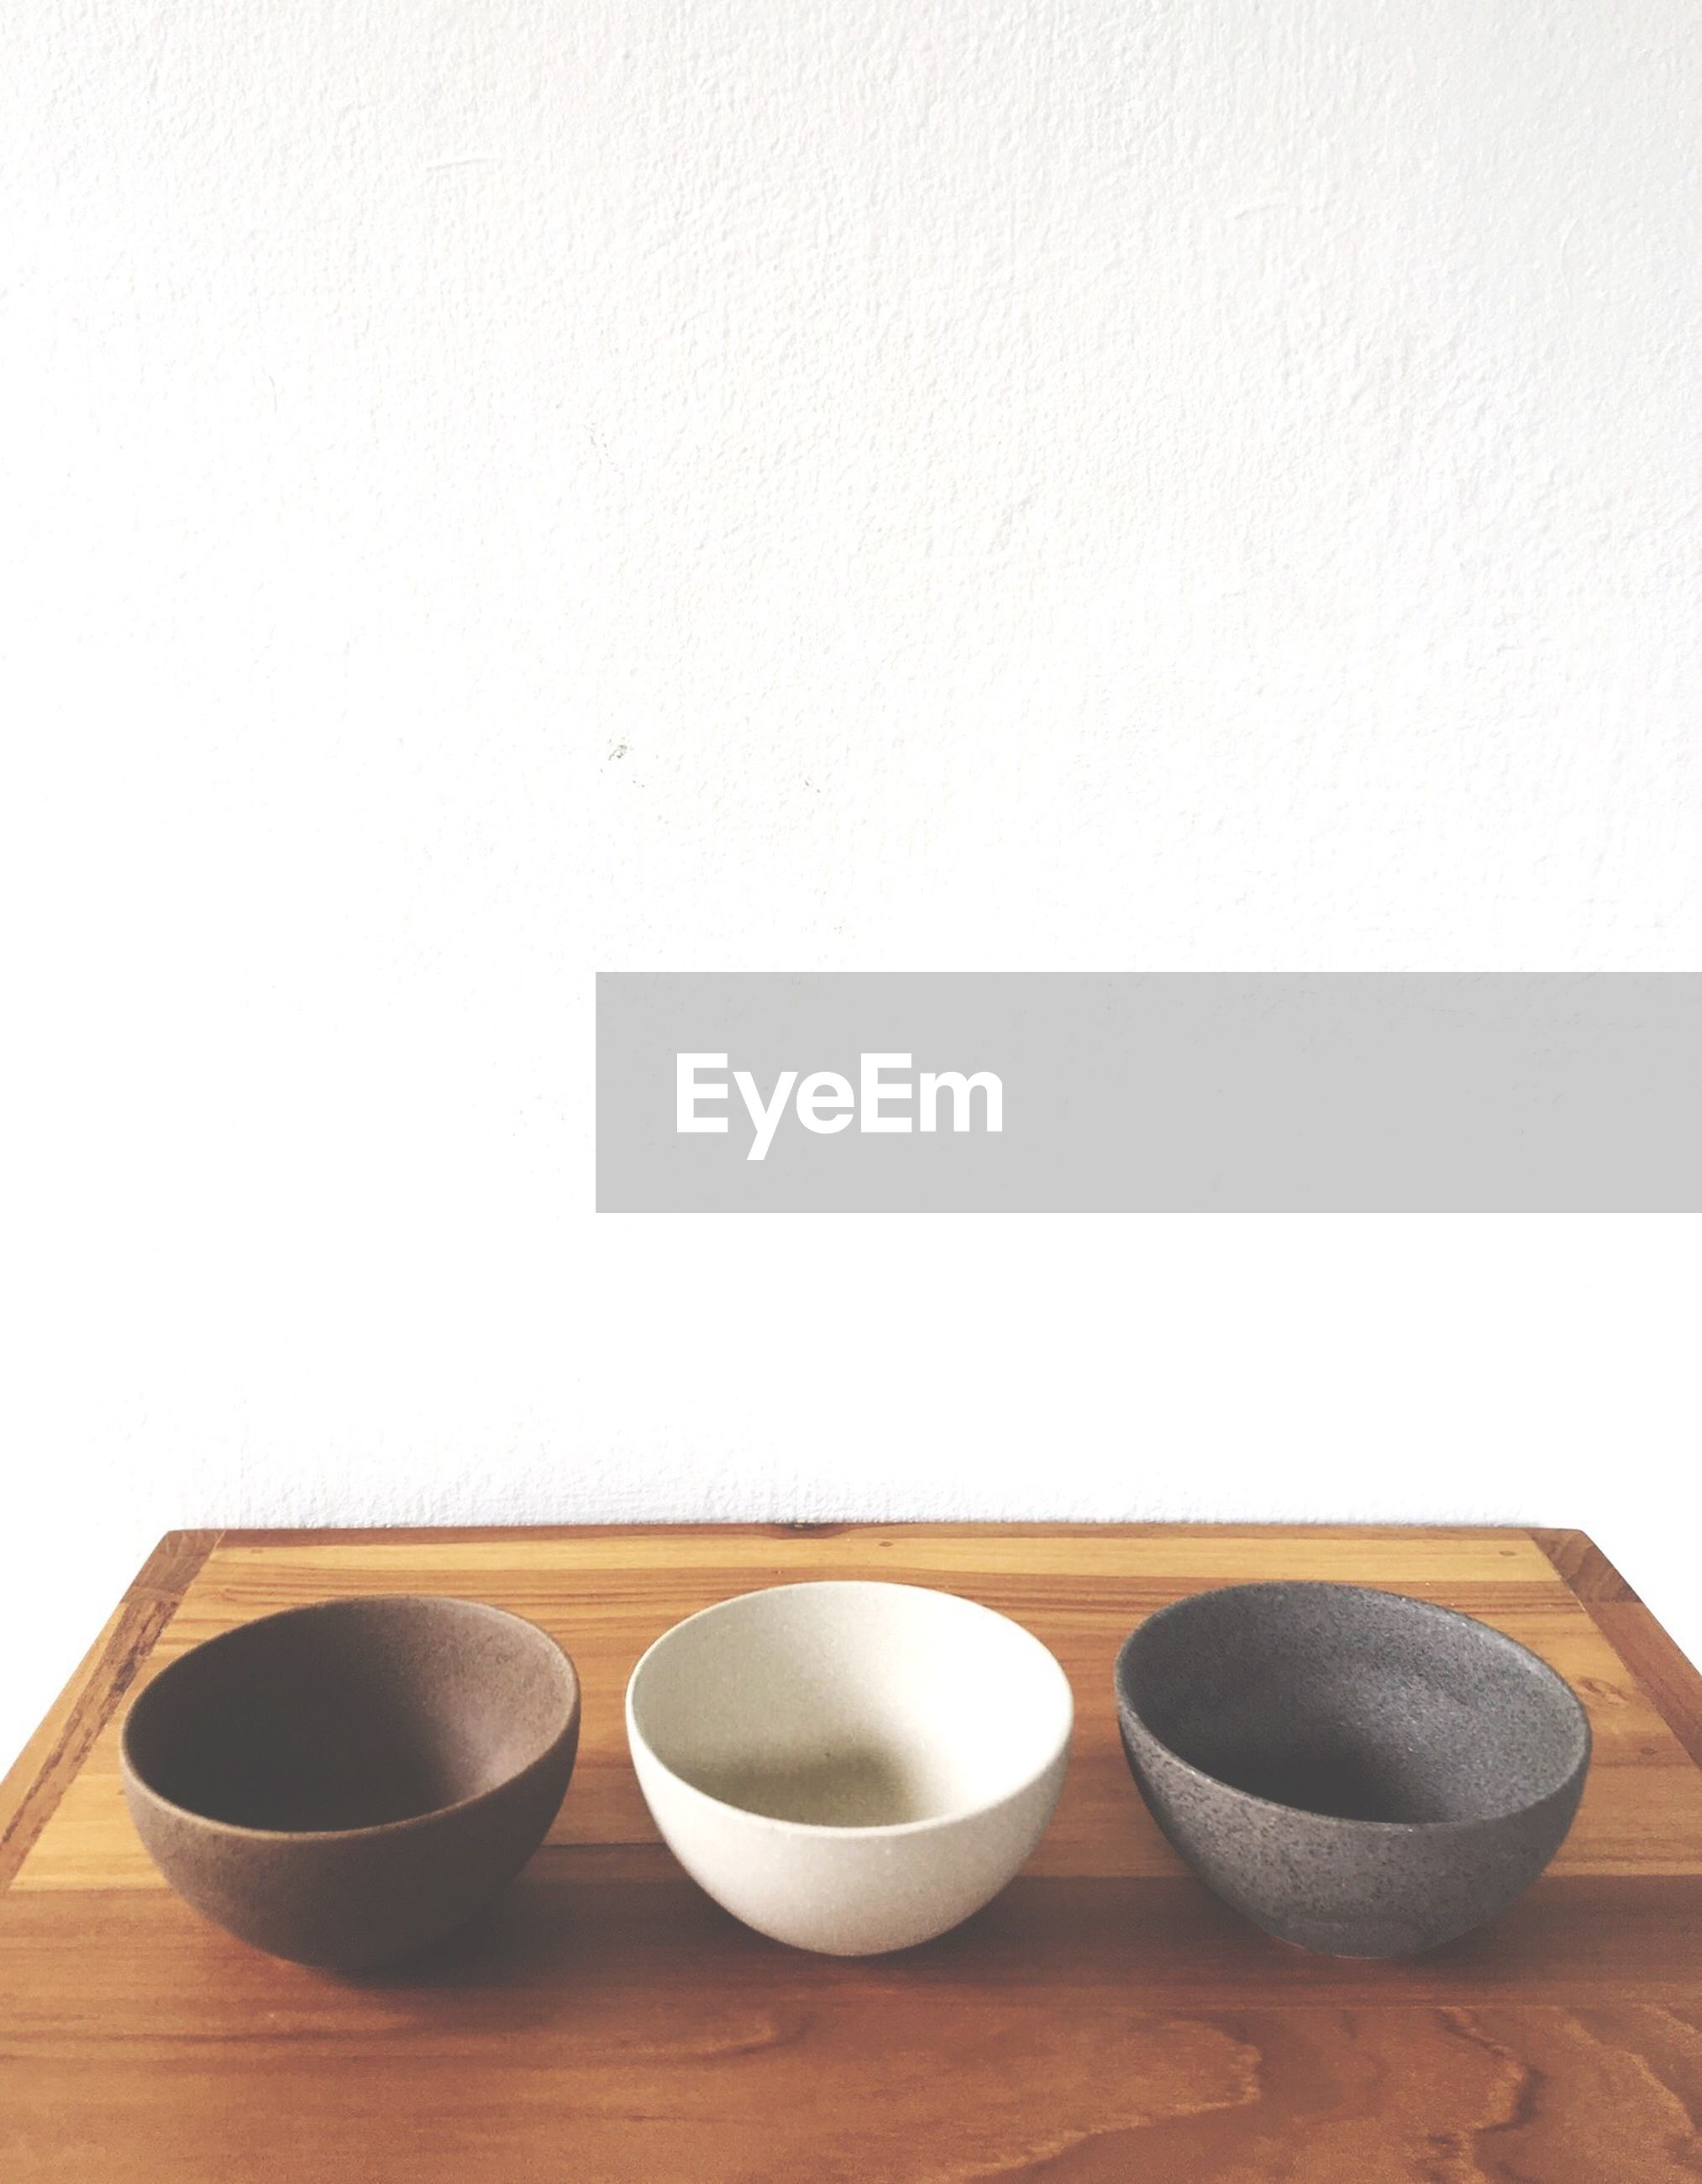 Close-up of bowls on wooden table against wall